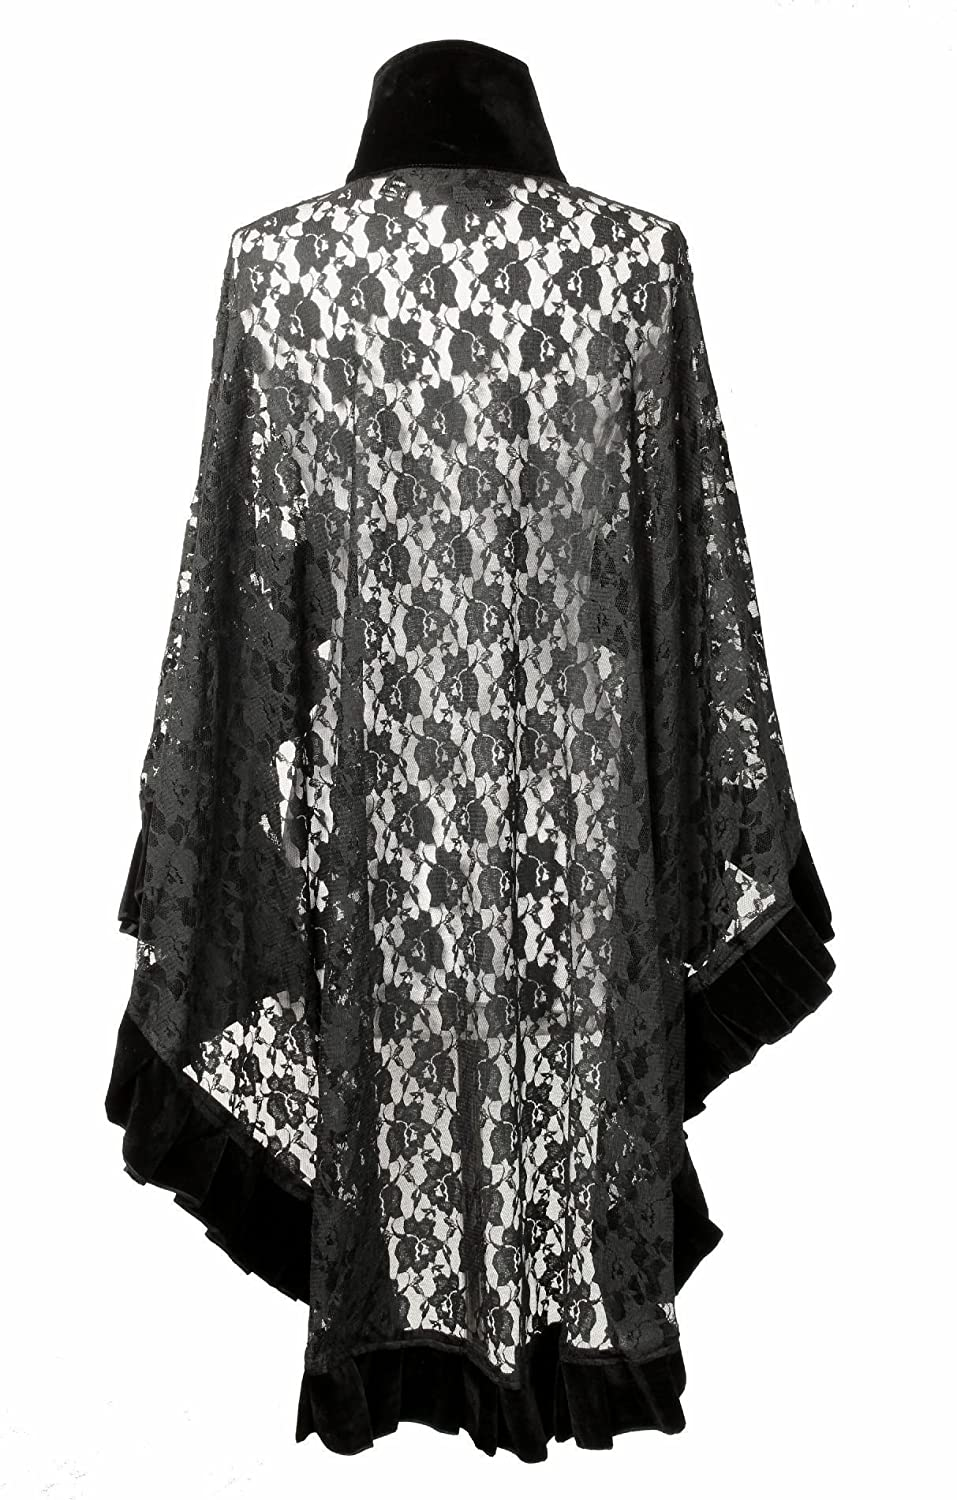 Steampunk Jacket | Steampunk Coat, Overcoat, Cape Burleska Womens Catherine Black Lace Cape Wrap With Velvet Trim $68.99 AT vintagedancer.com